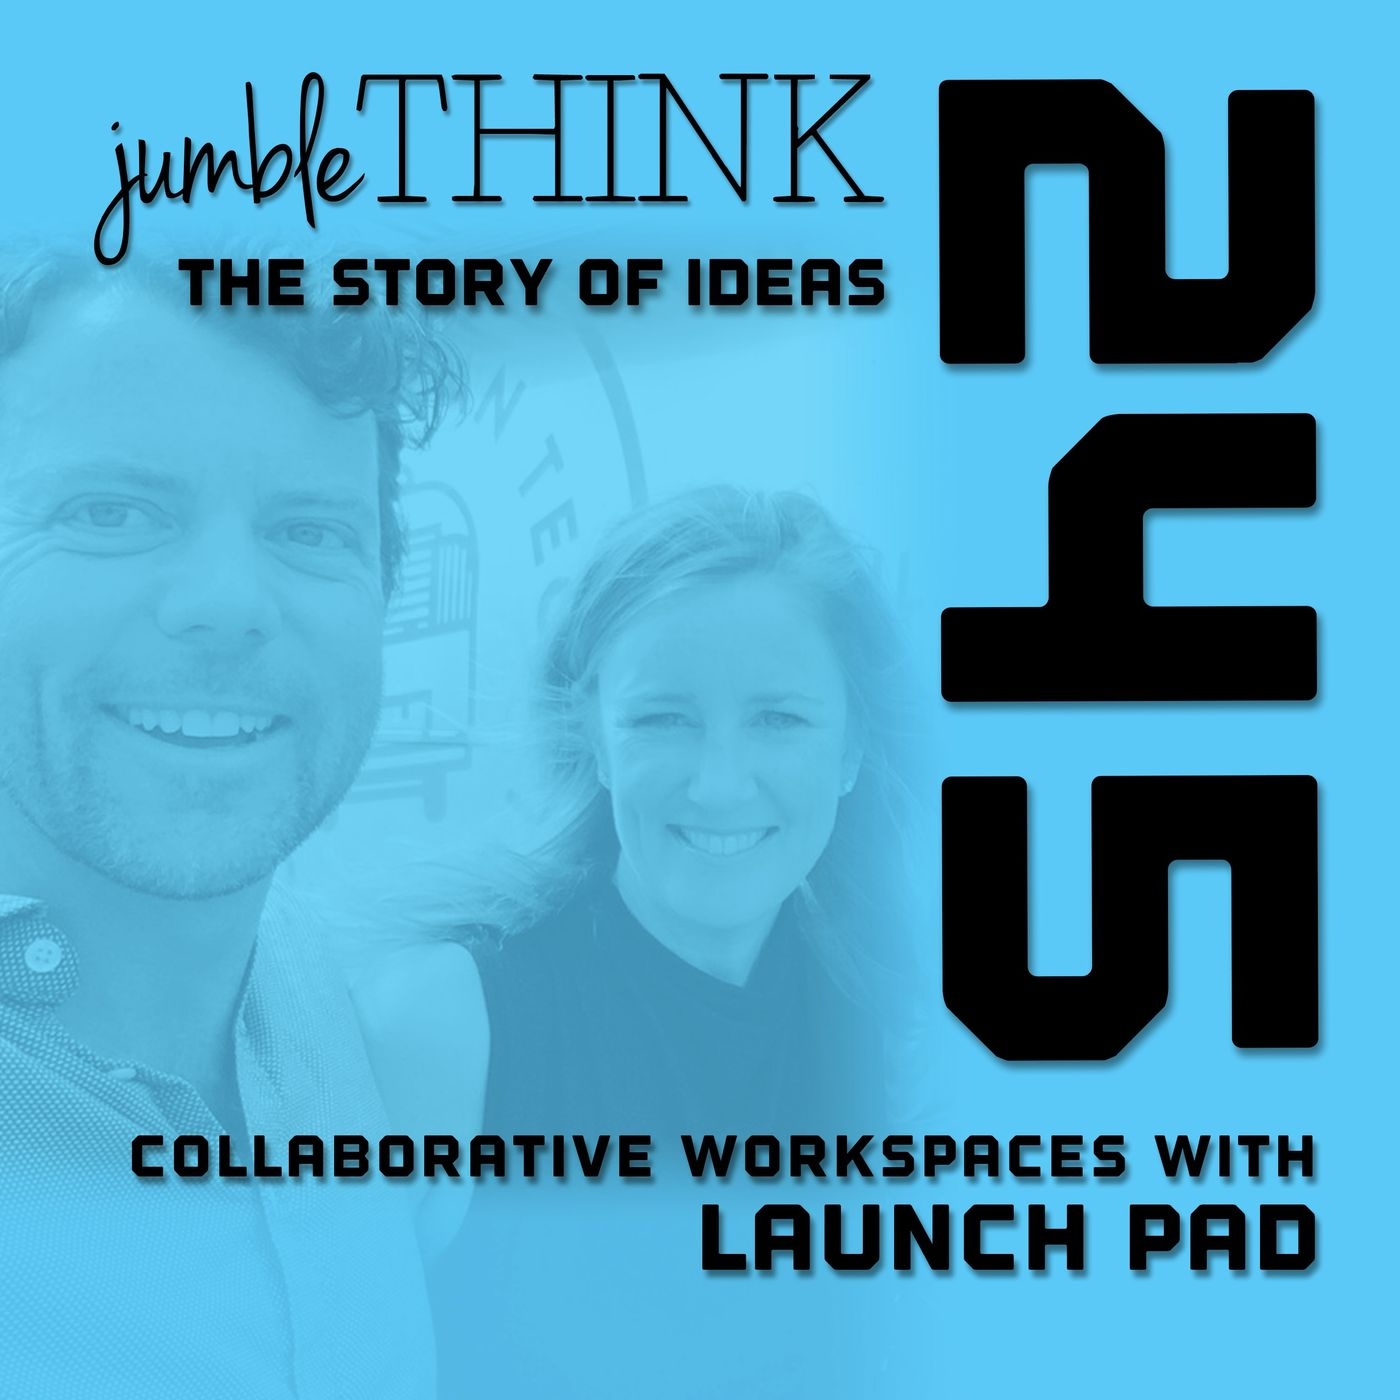 Collaborative Workspaces with Launch Pad